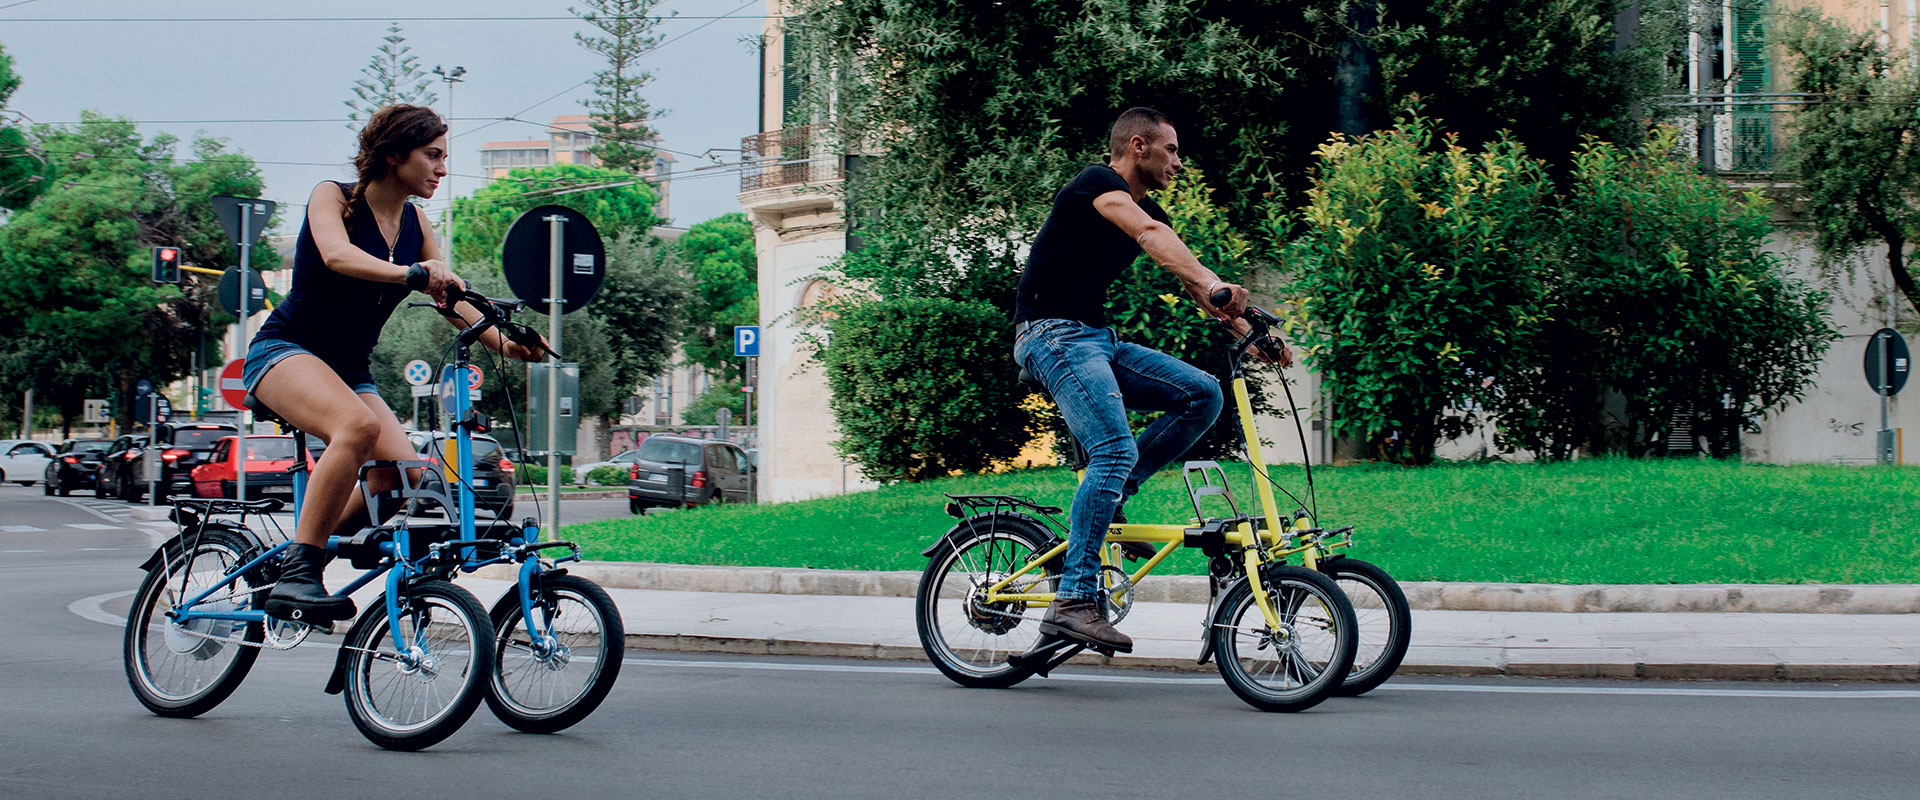 E-bike E-trike basculanti inclinabili